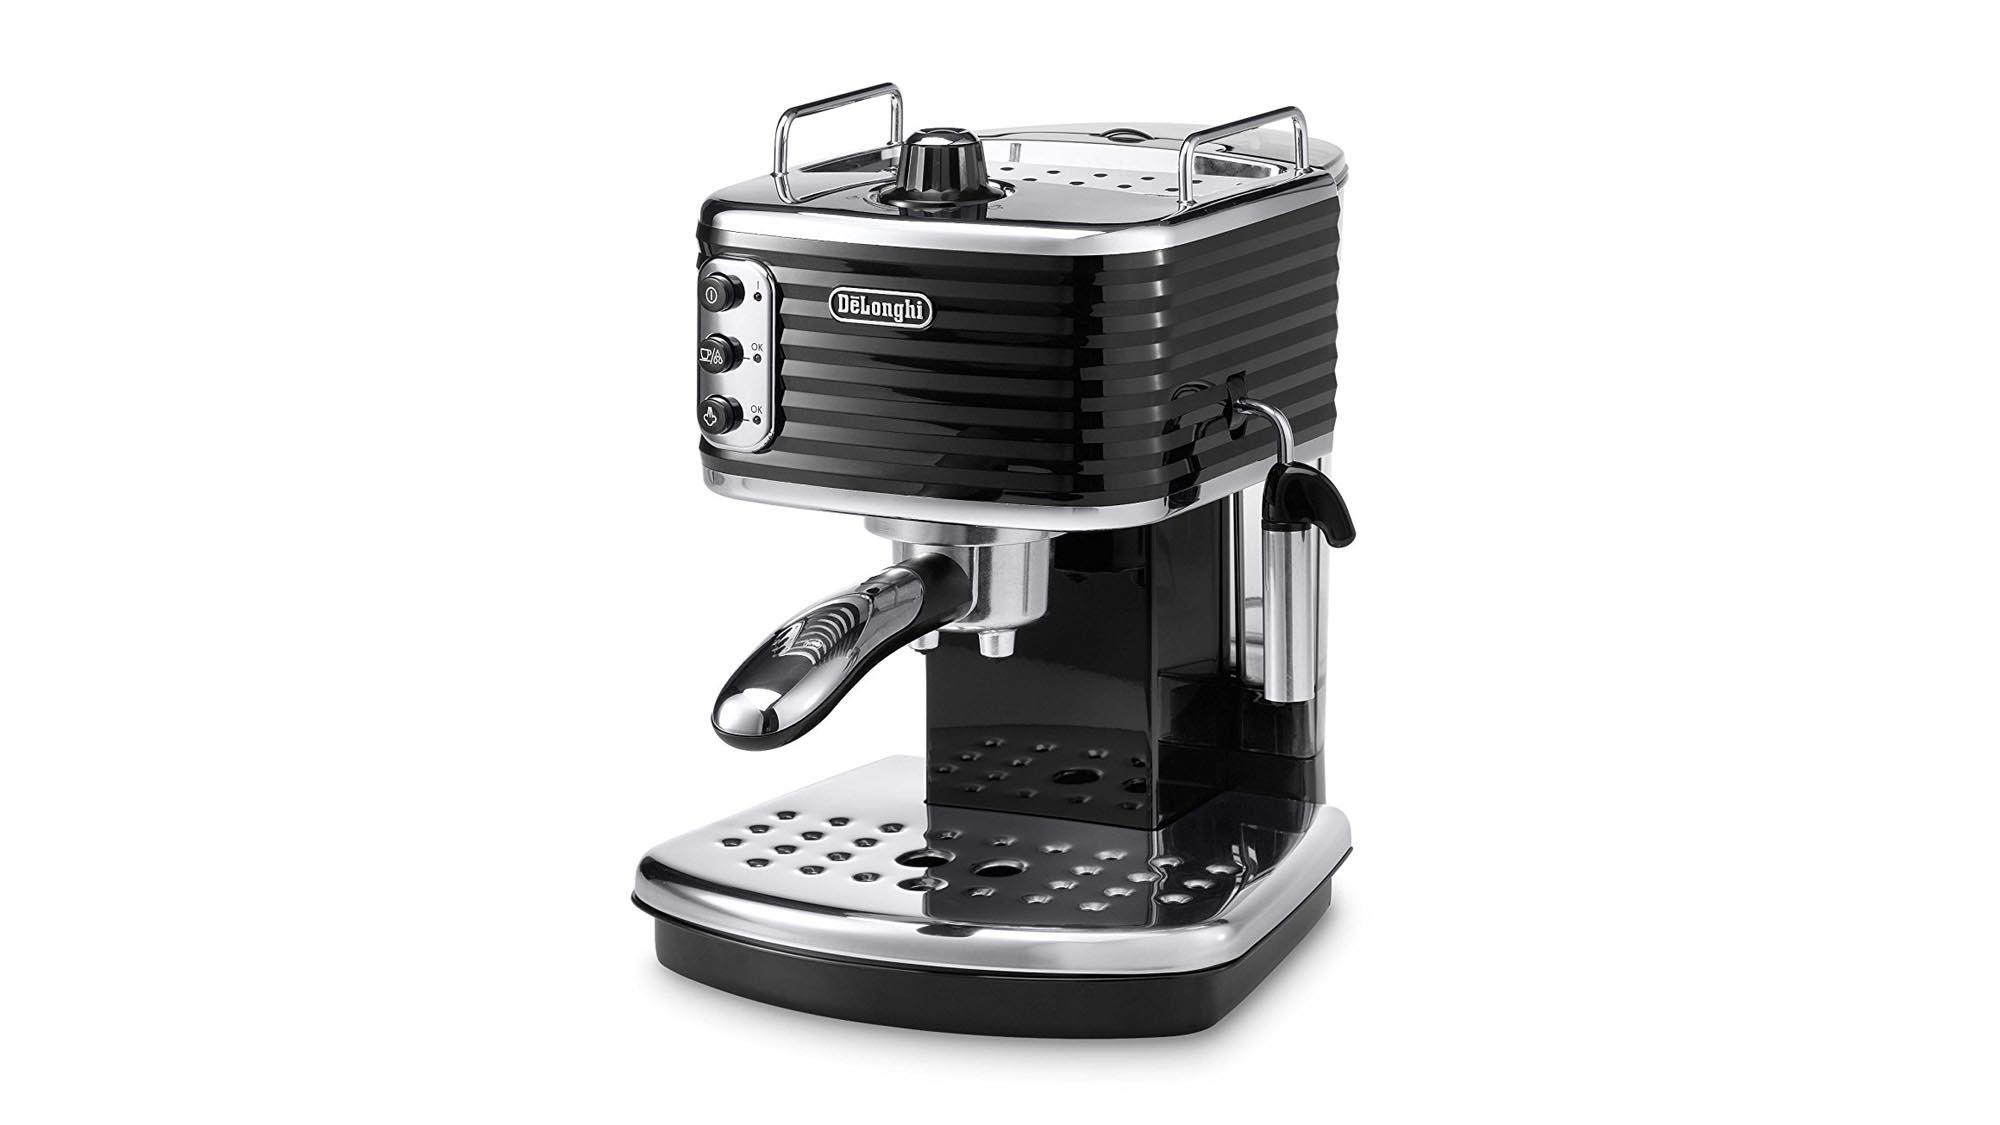 How to choose a coffee maker